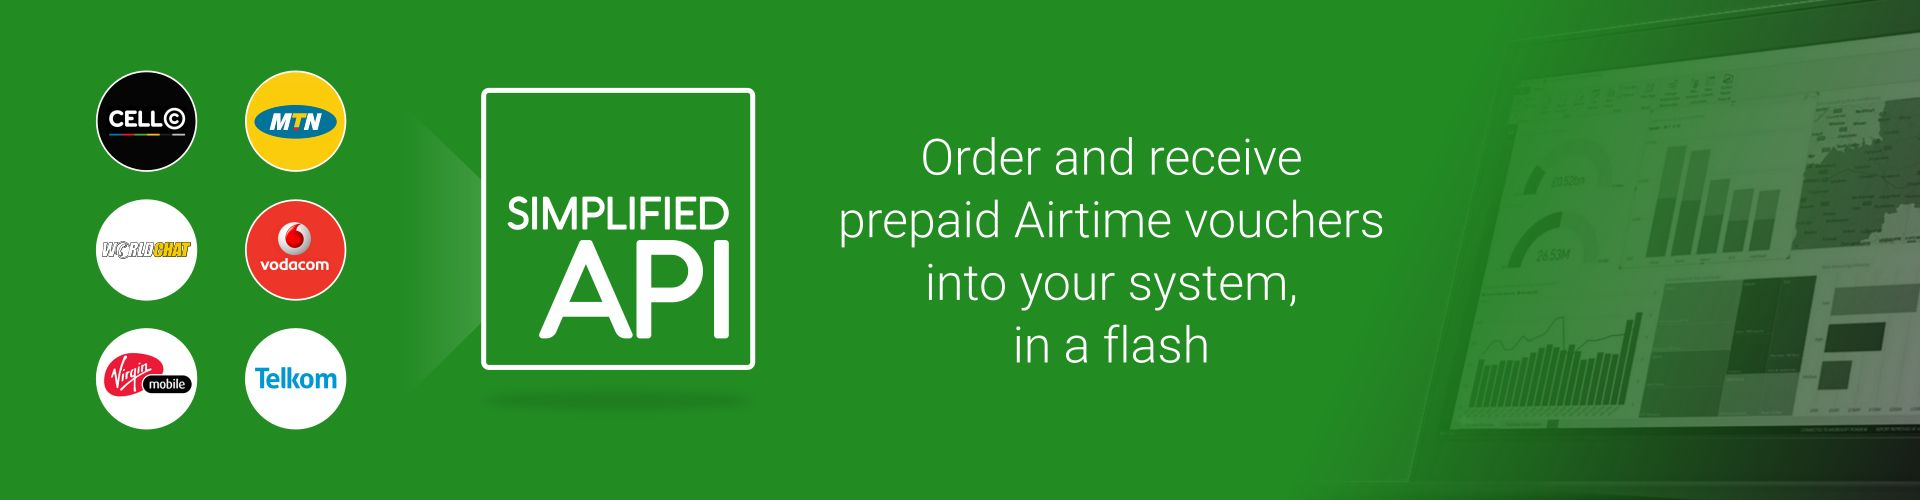 Easy to use Airtime API, sell MTN, vodacom and Telkom vouchers